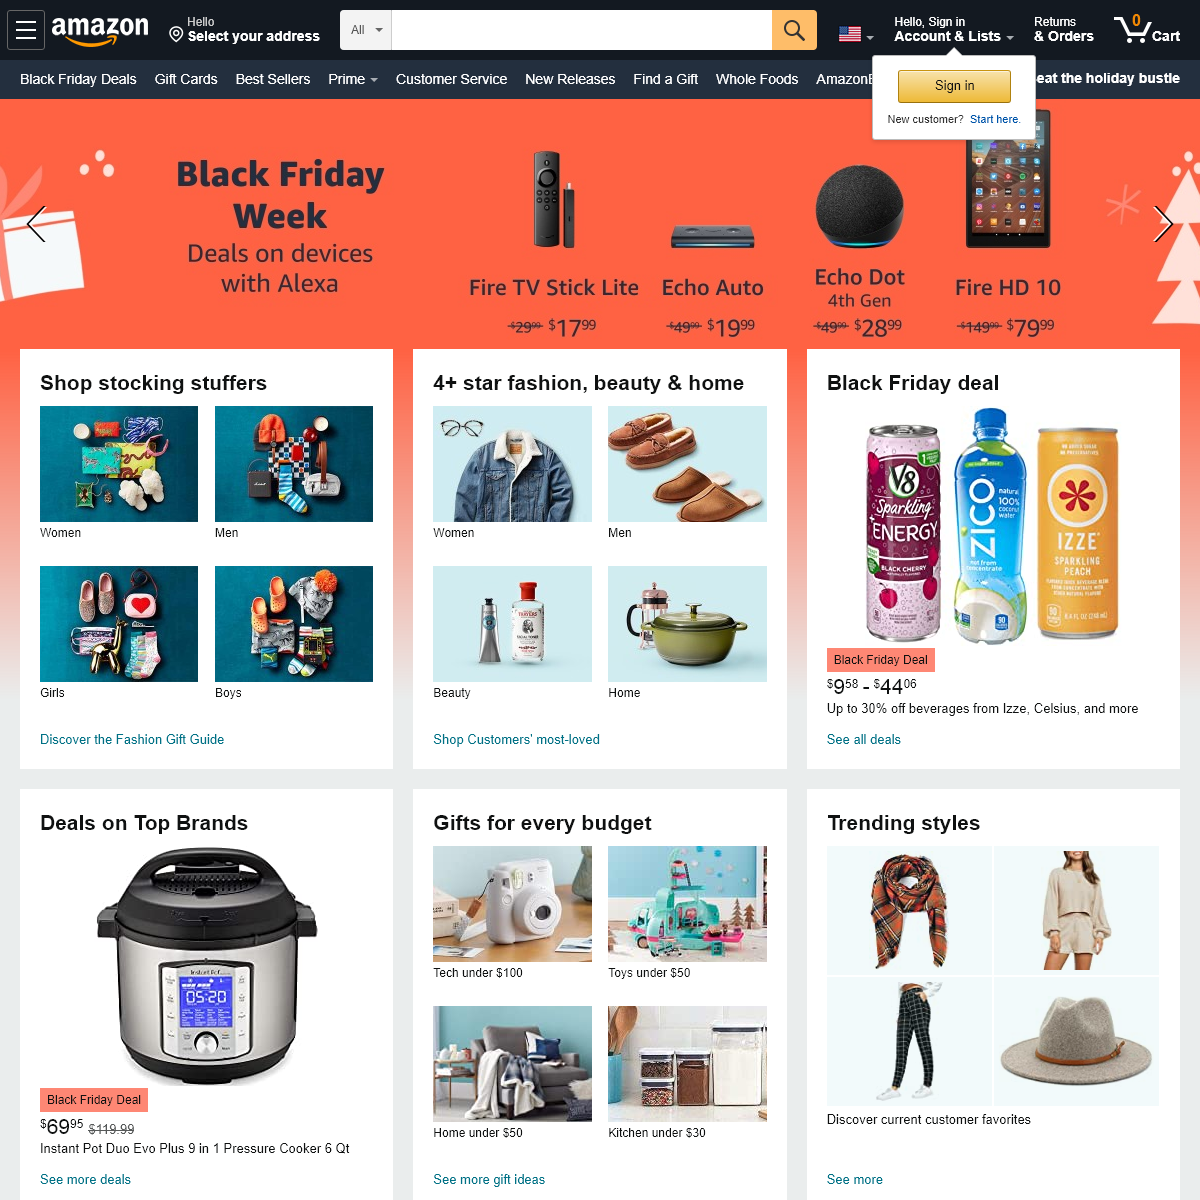 Amazon.com- Online Shopping for Electronics, Apparel, Computers, Books, DVDs & more